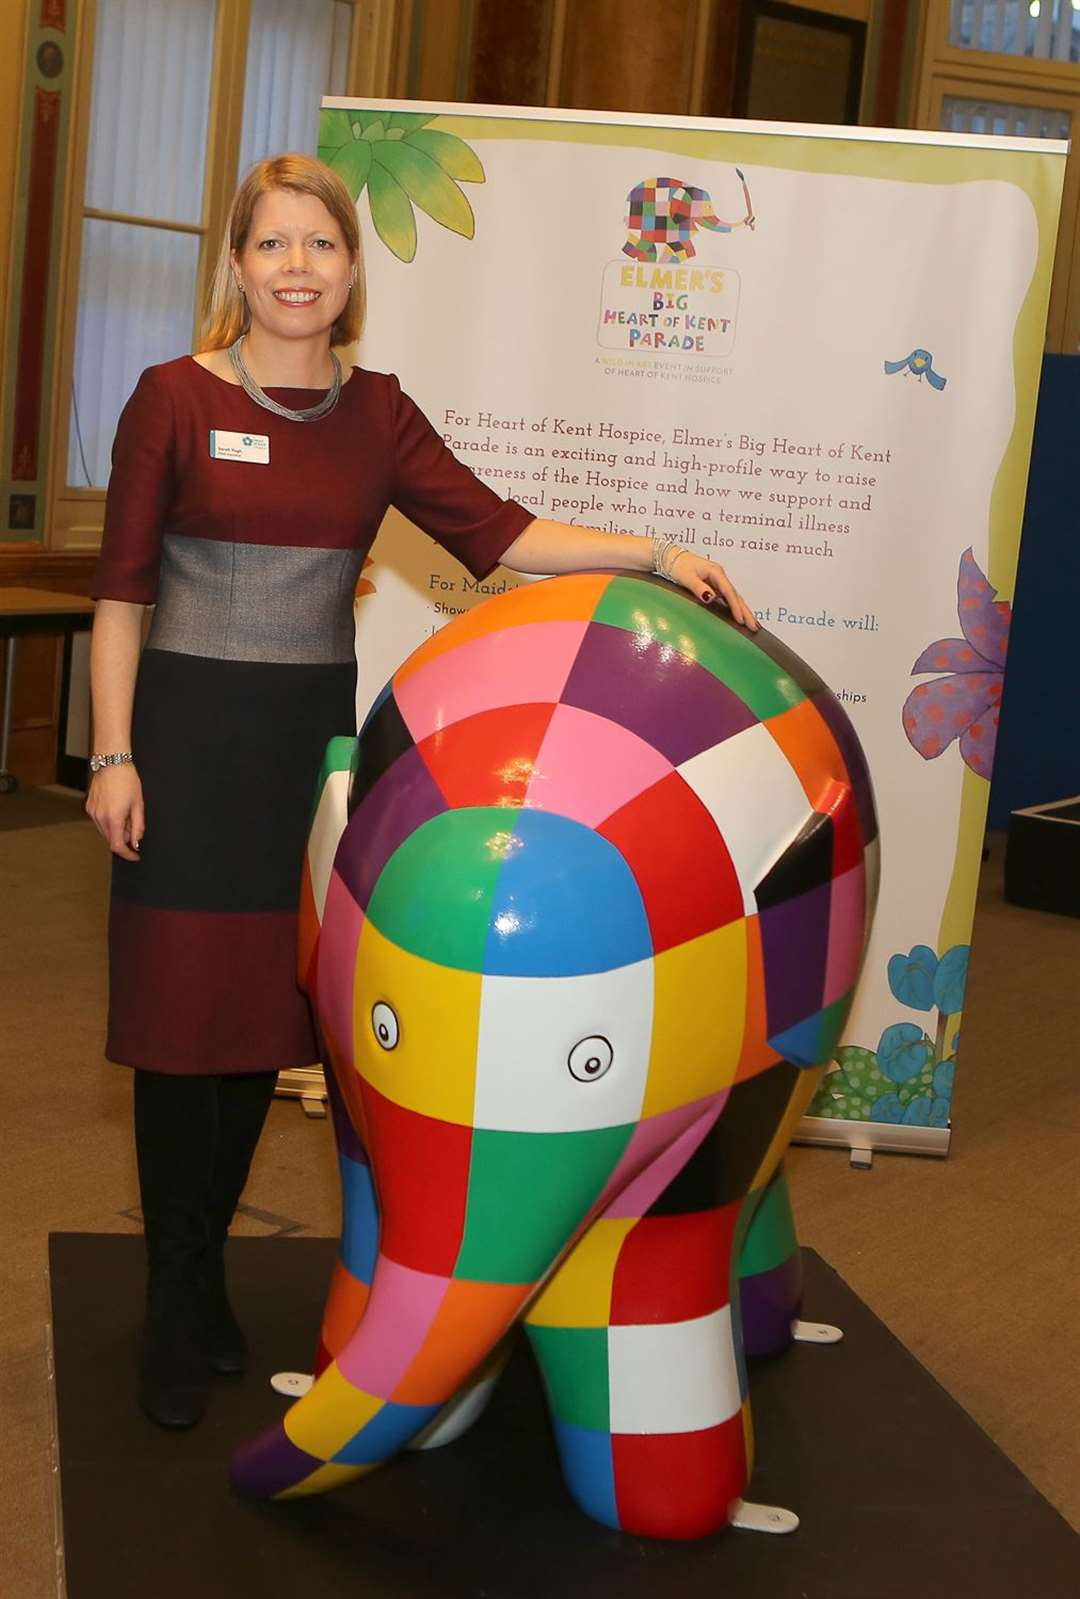 Sarah Pugh from the Heart of Kent Hospice with Elmer